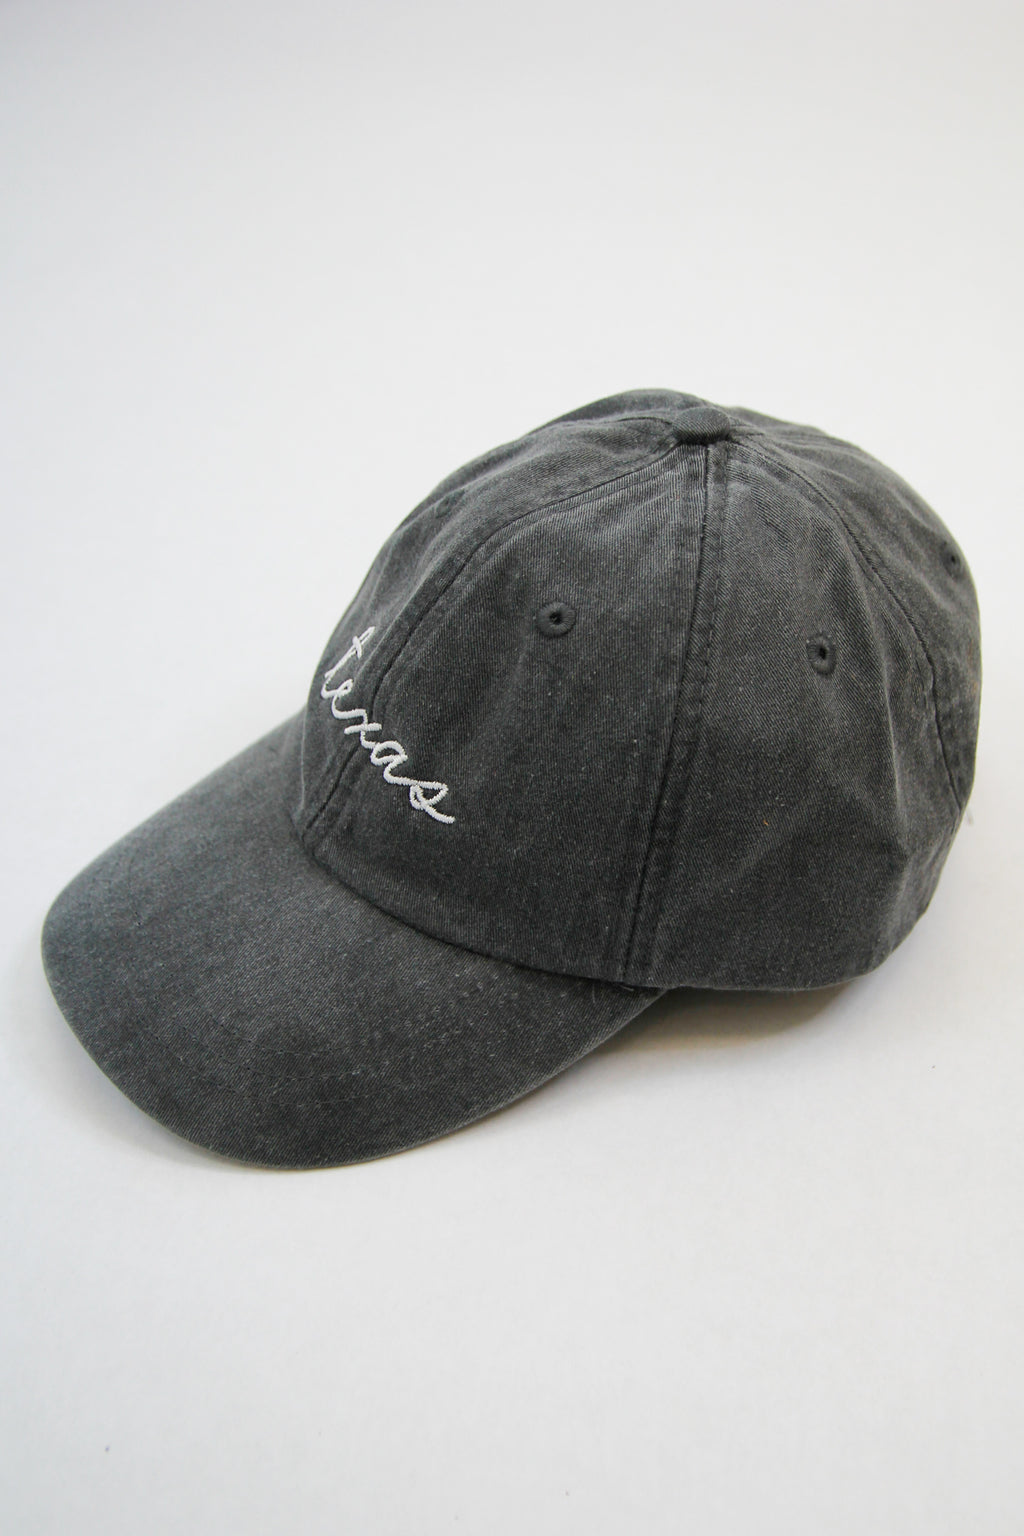 Texas Ball Cap - Charcoal